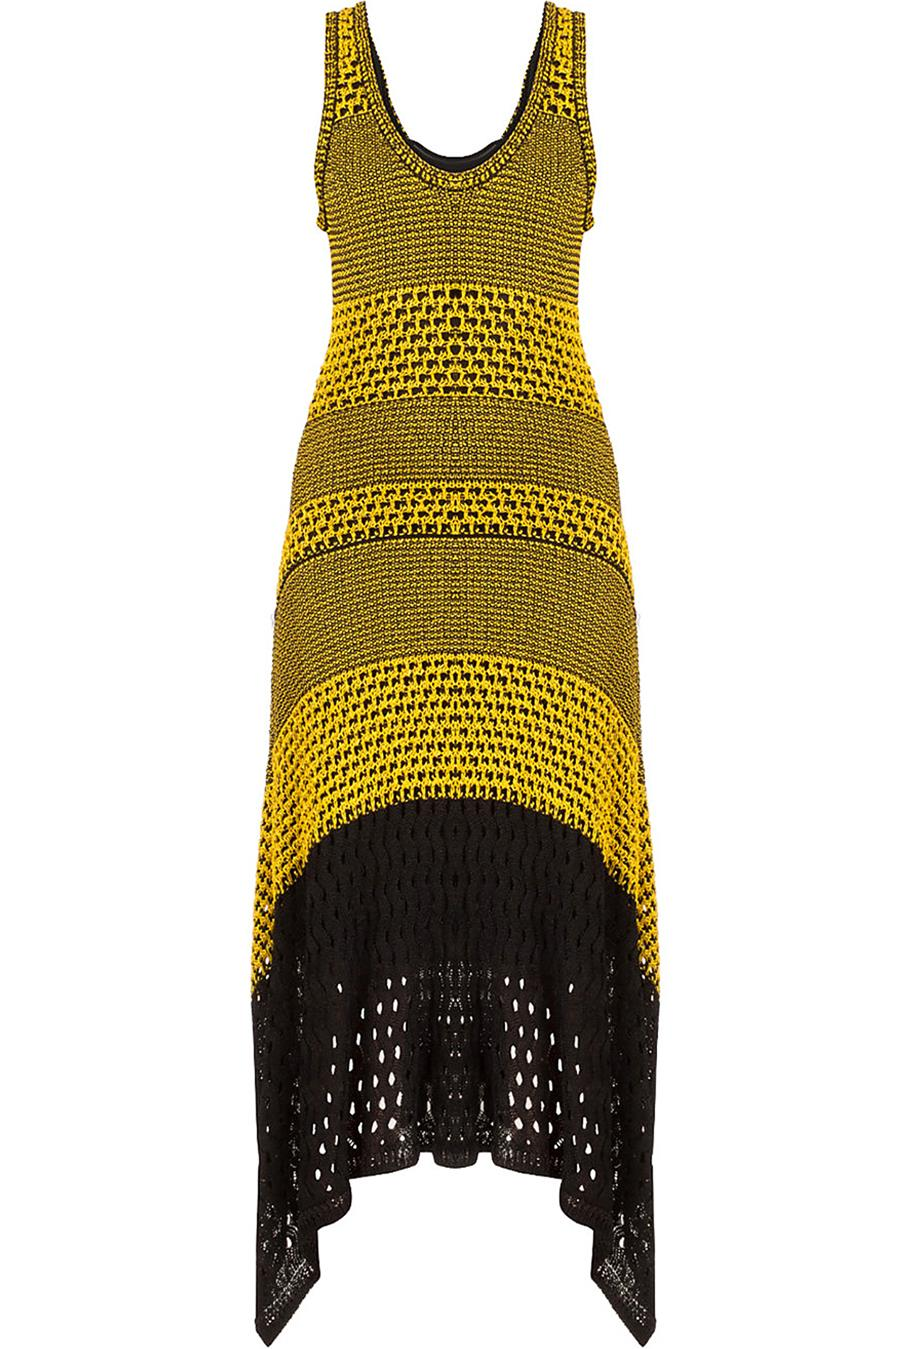 PROENZA SCHOULER ASYMMETRIC CROCHET KNIT MIDI DRESS SMALL